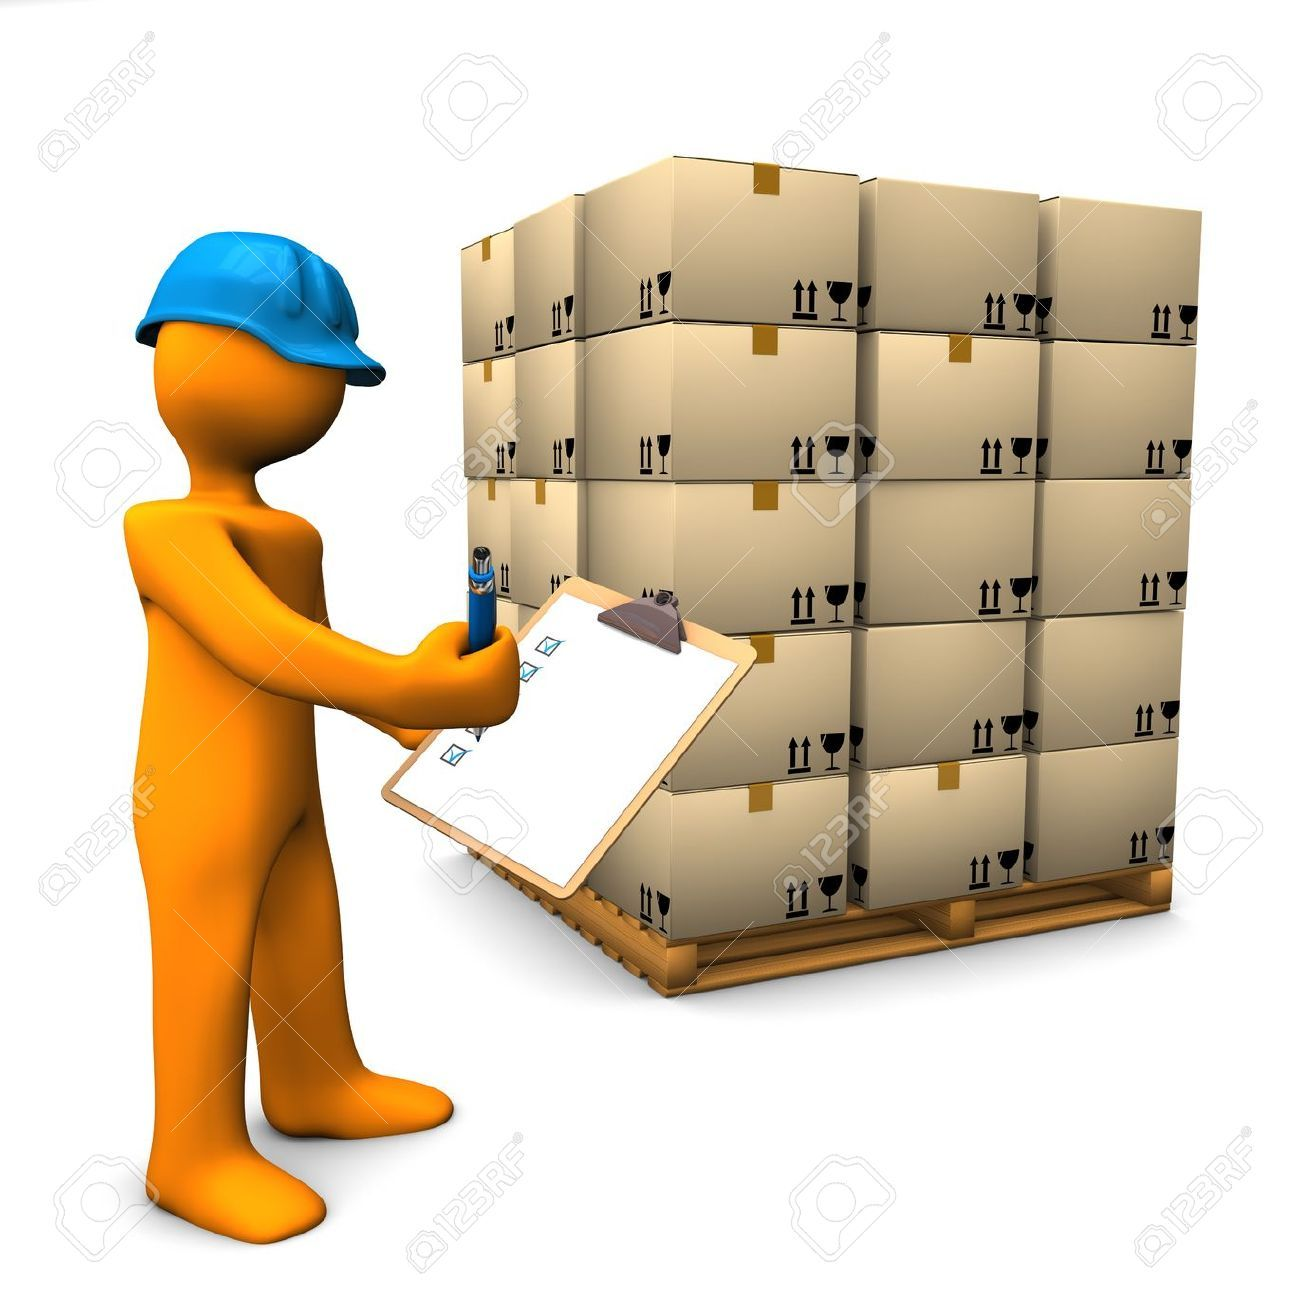 warehouse clipart inventory